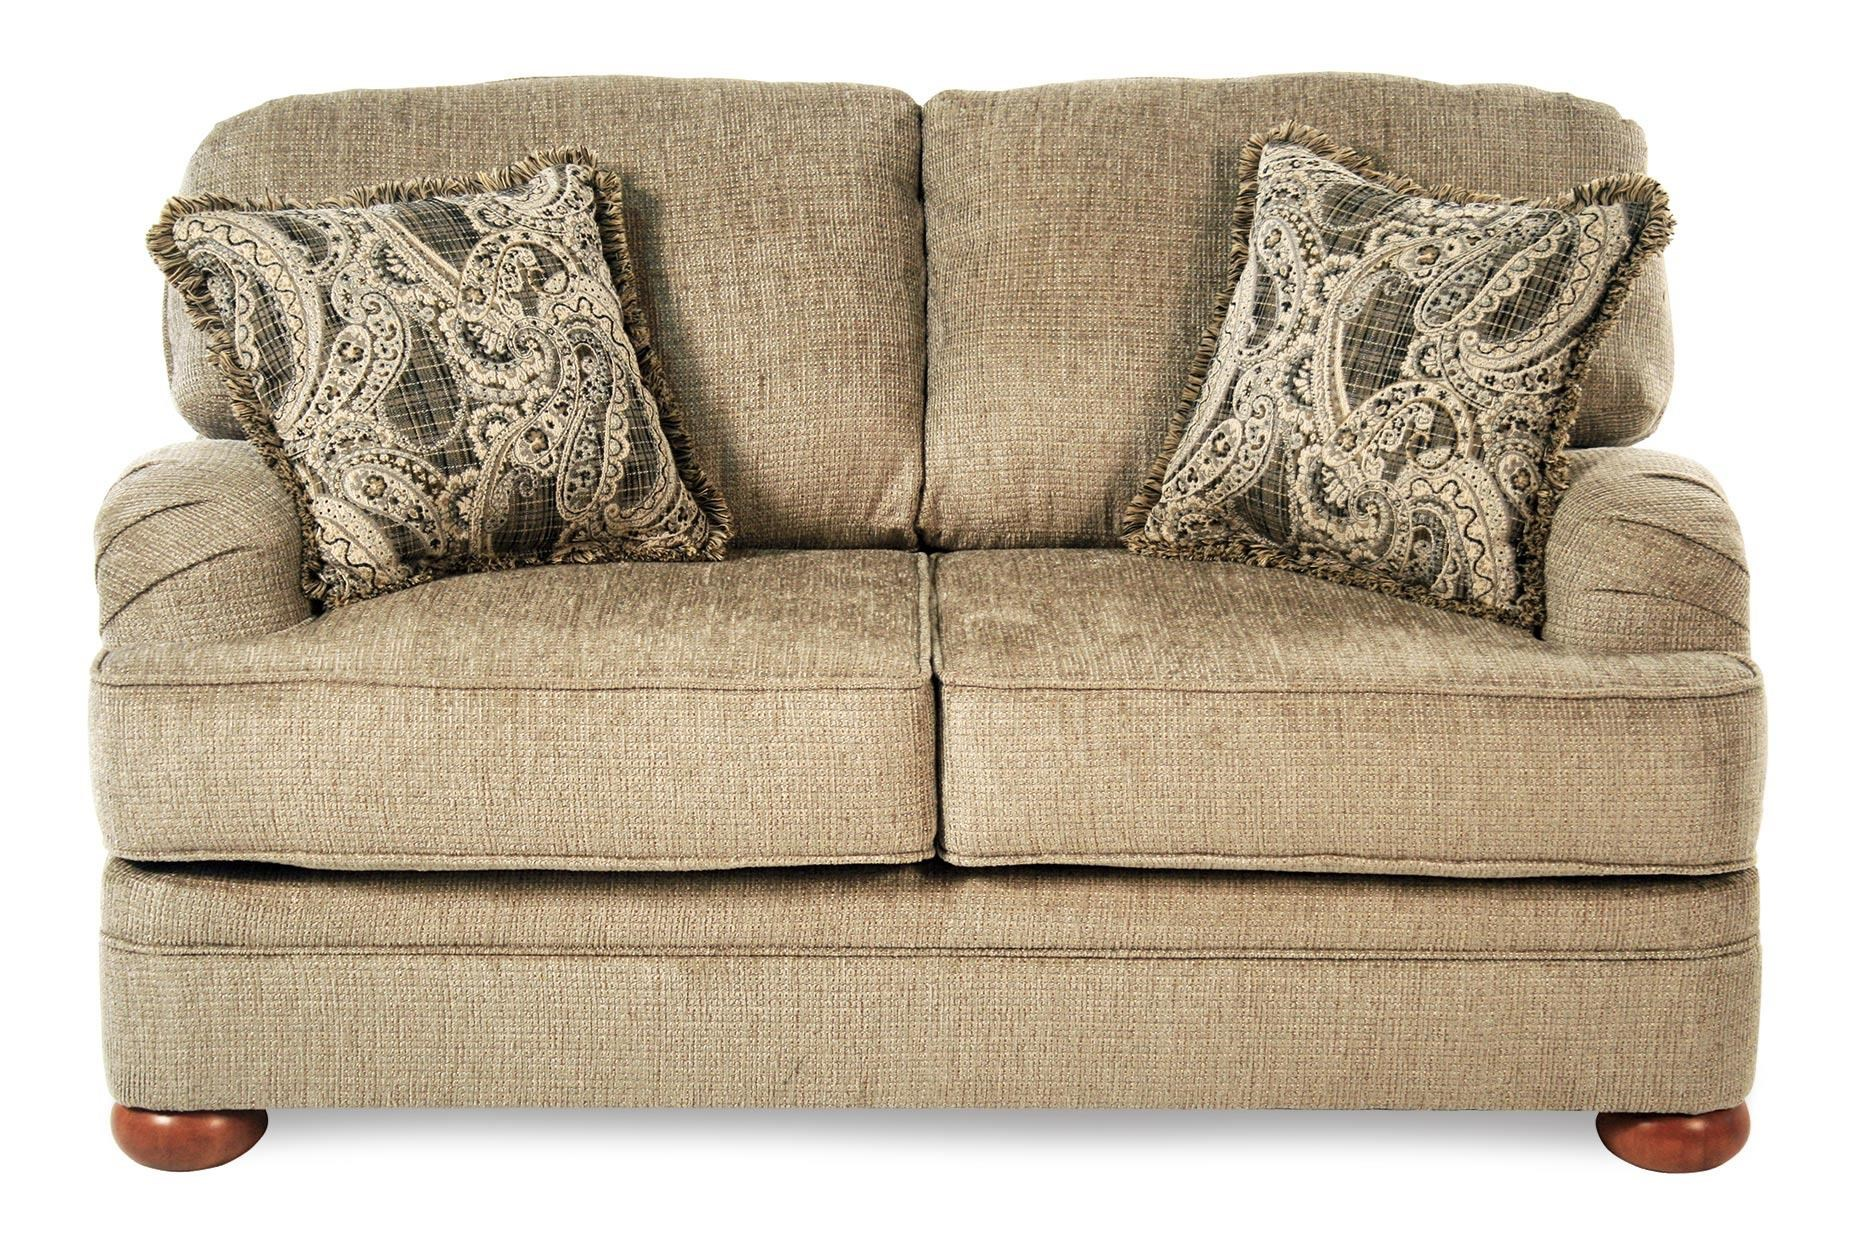 Serta Upholstery Orion Loveseat - Item Number: 5500LS-BEIGE